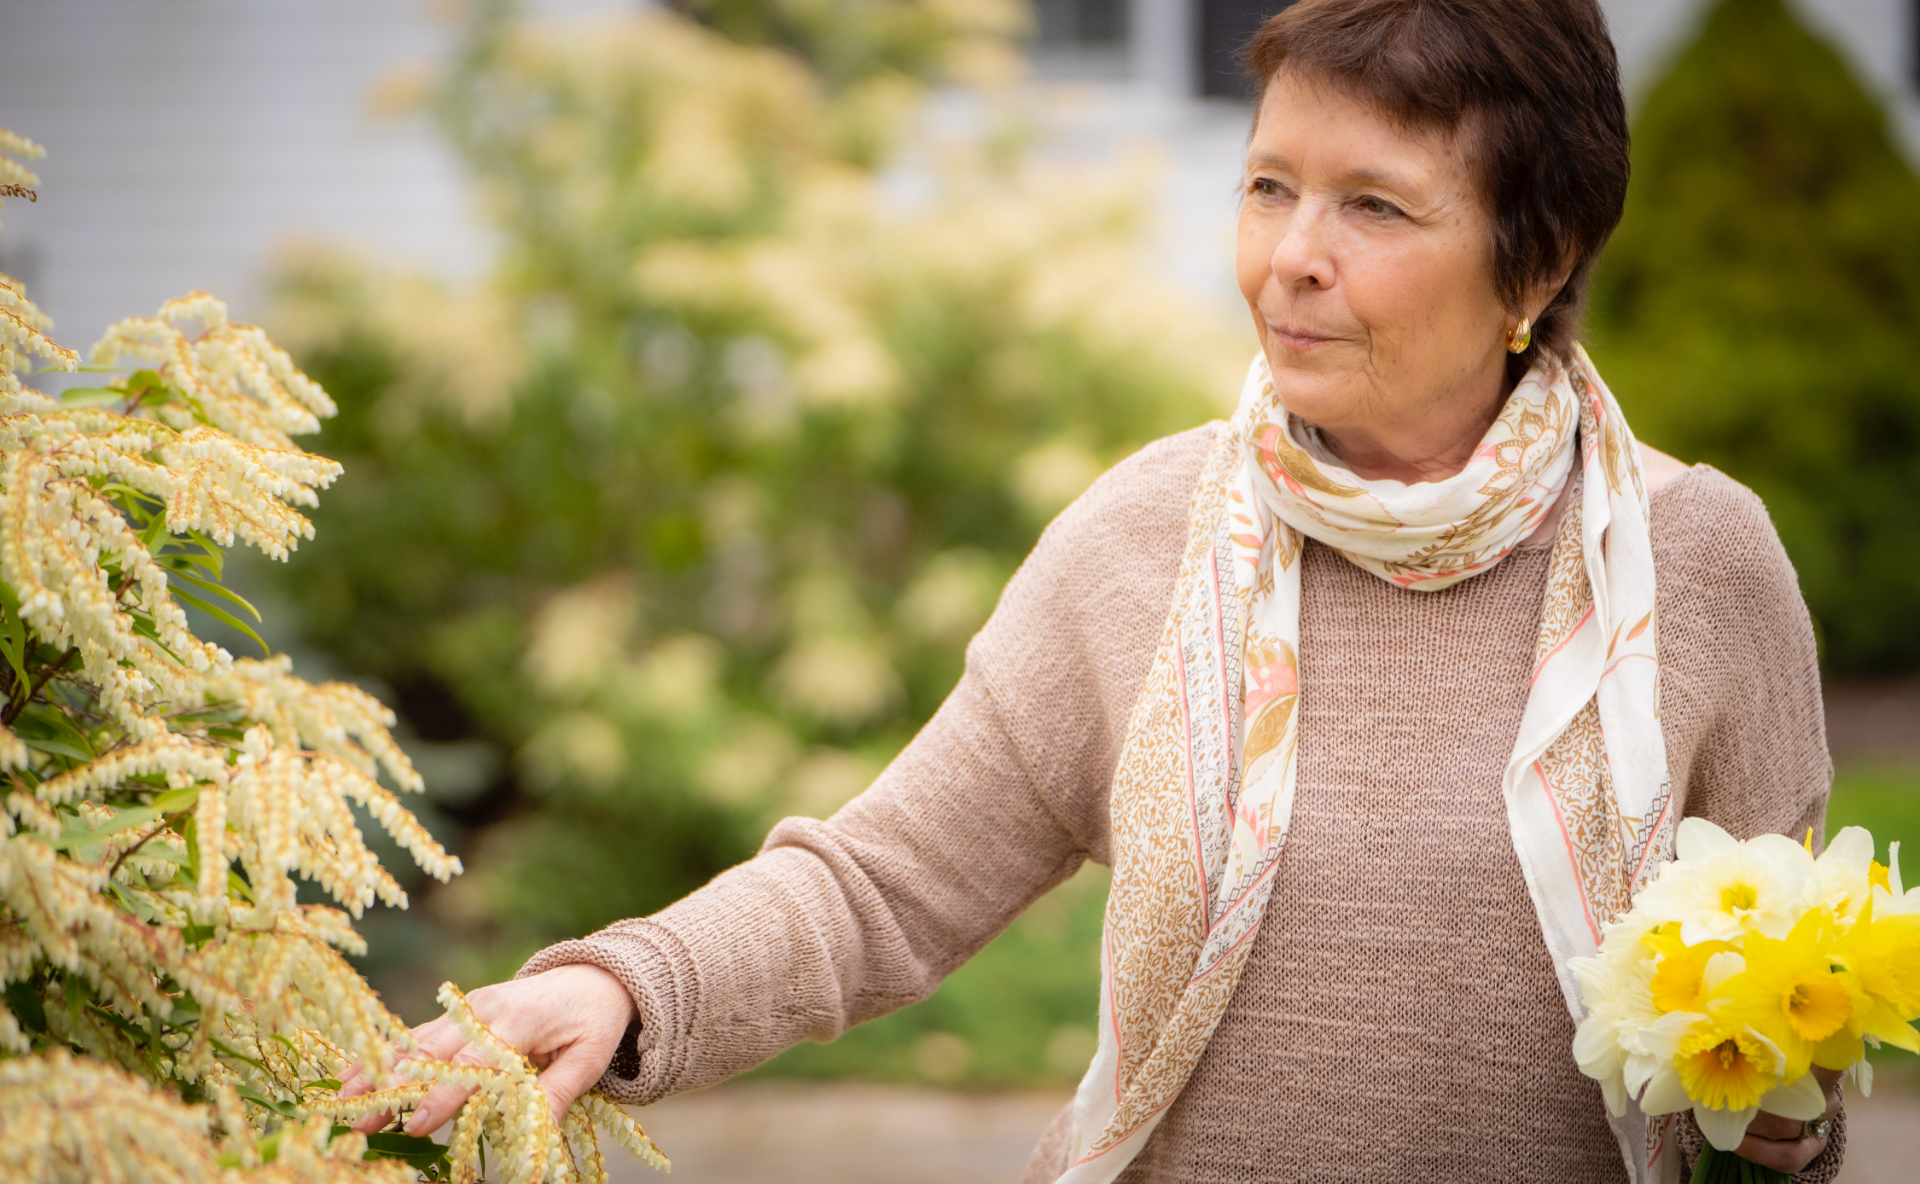 A candid shot of Dr. Irwin standing in her garden serenely admiring a plant, as she reached out to touch its white flowers.